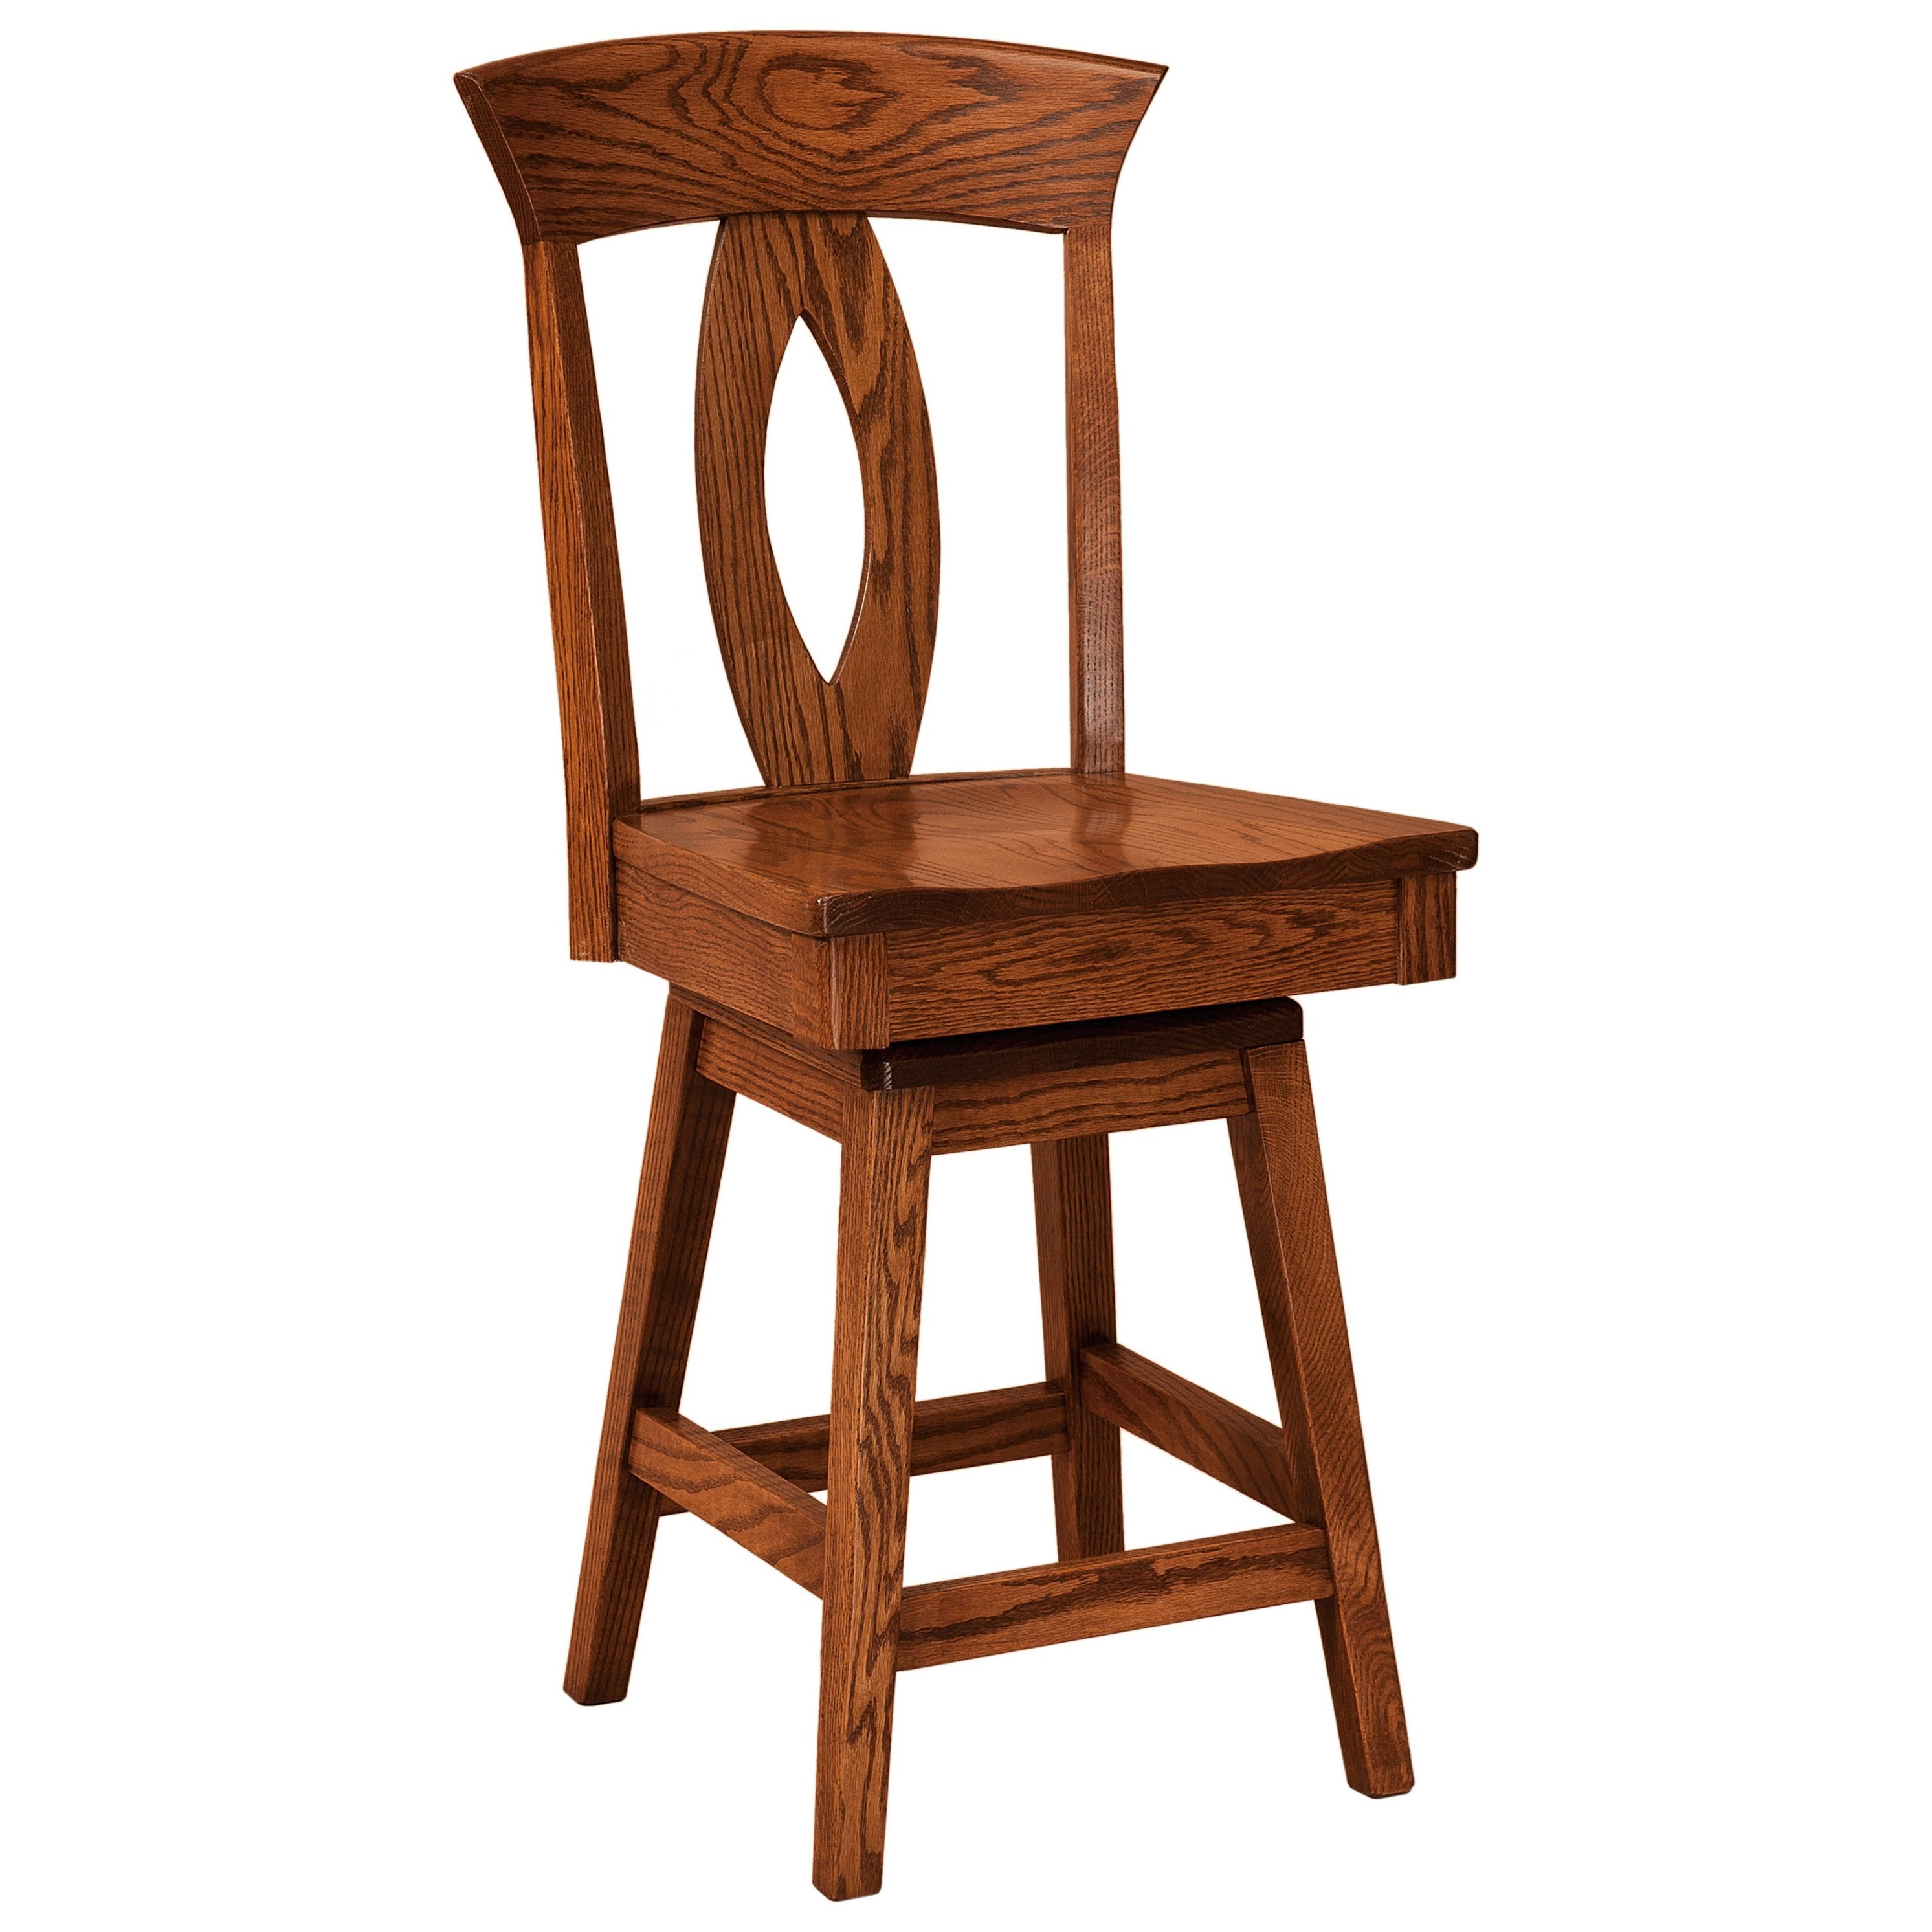 Swivel Bar Stool - Wood Seat